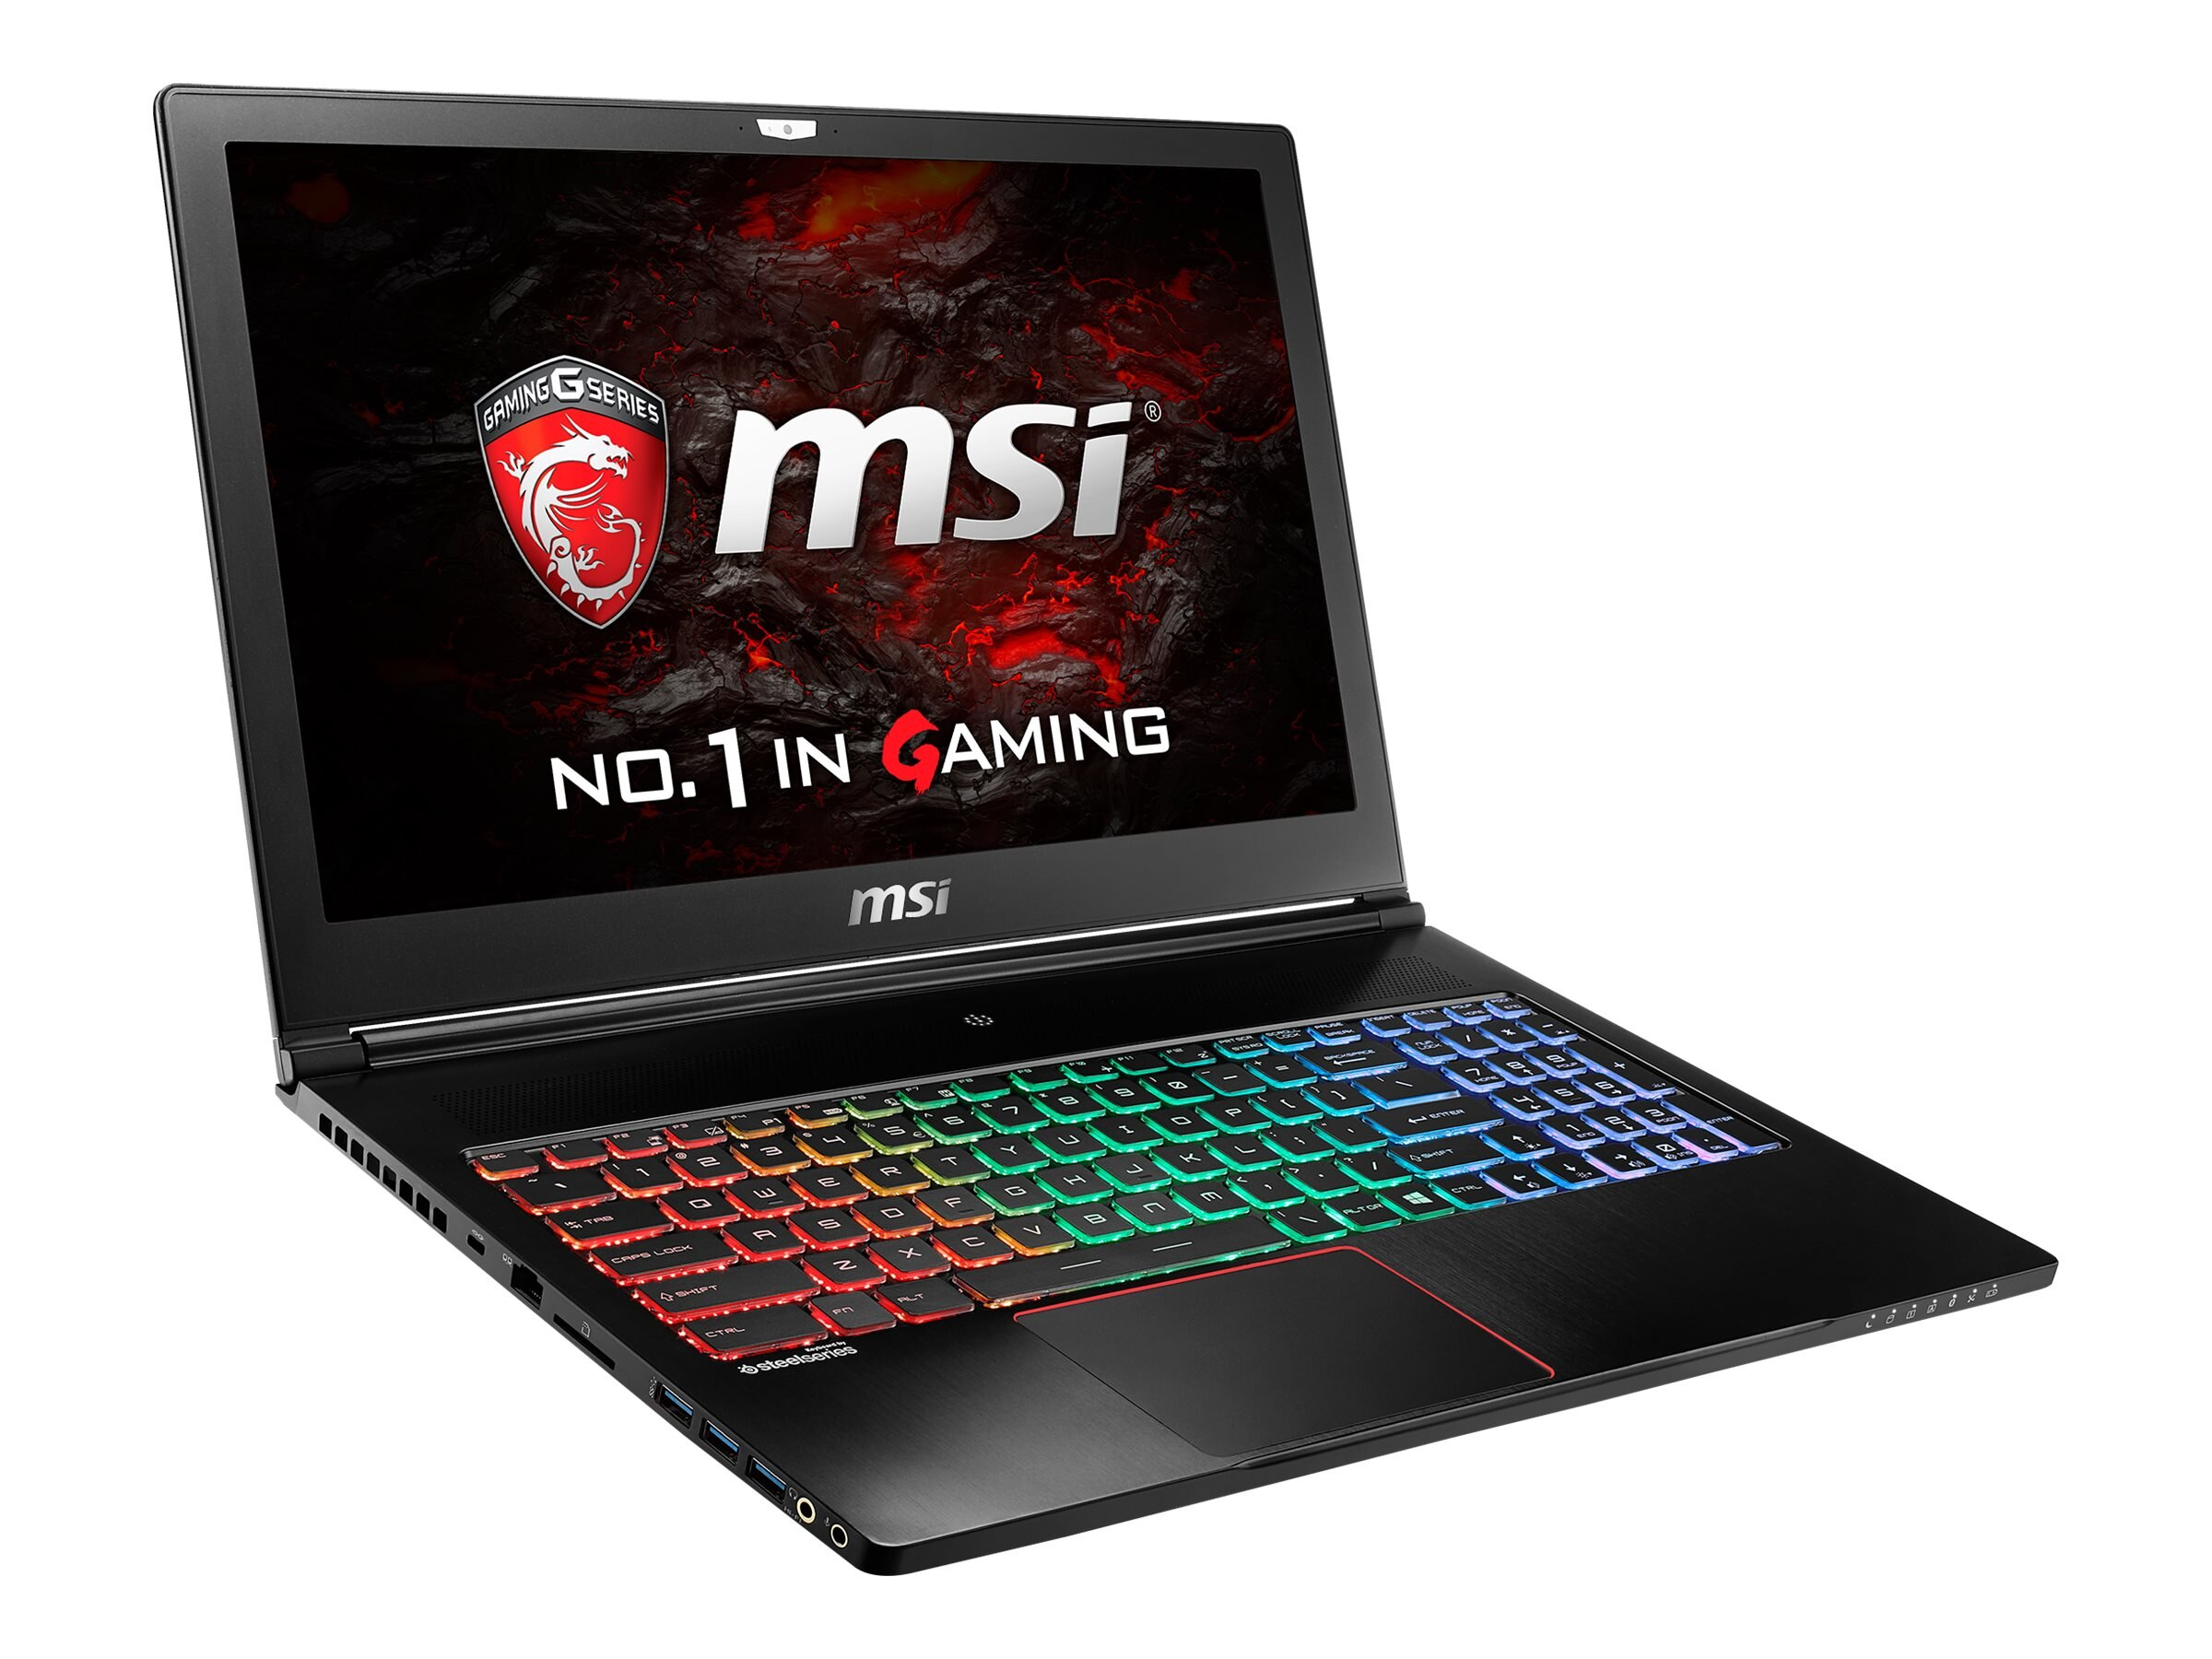 MSI Computer GS63VR STEALTH PRO 4K-021 Image 4